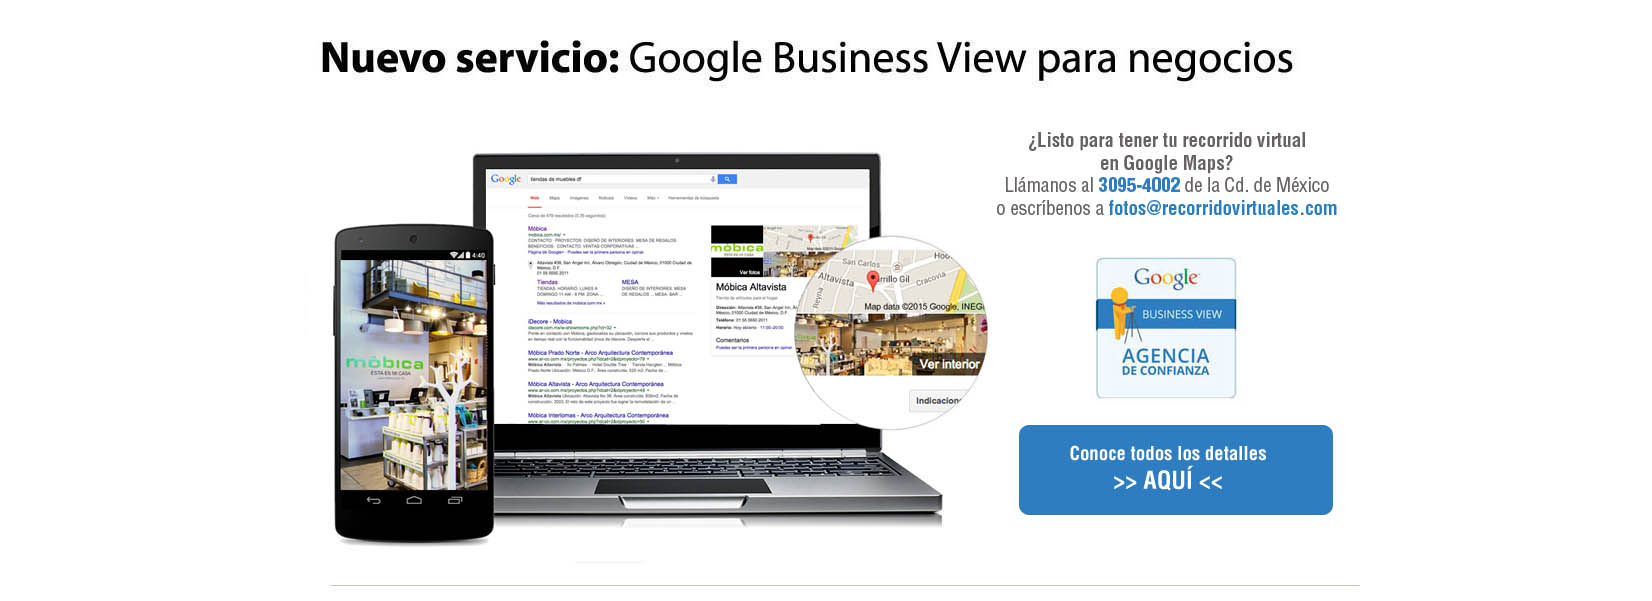 Google Business View